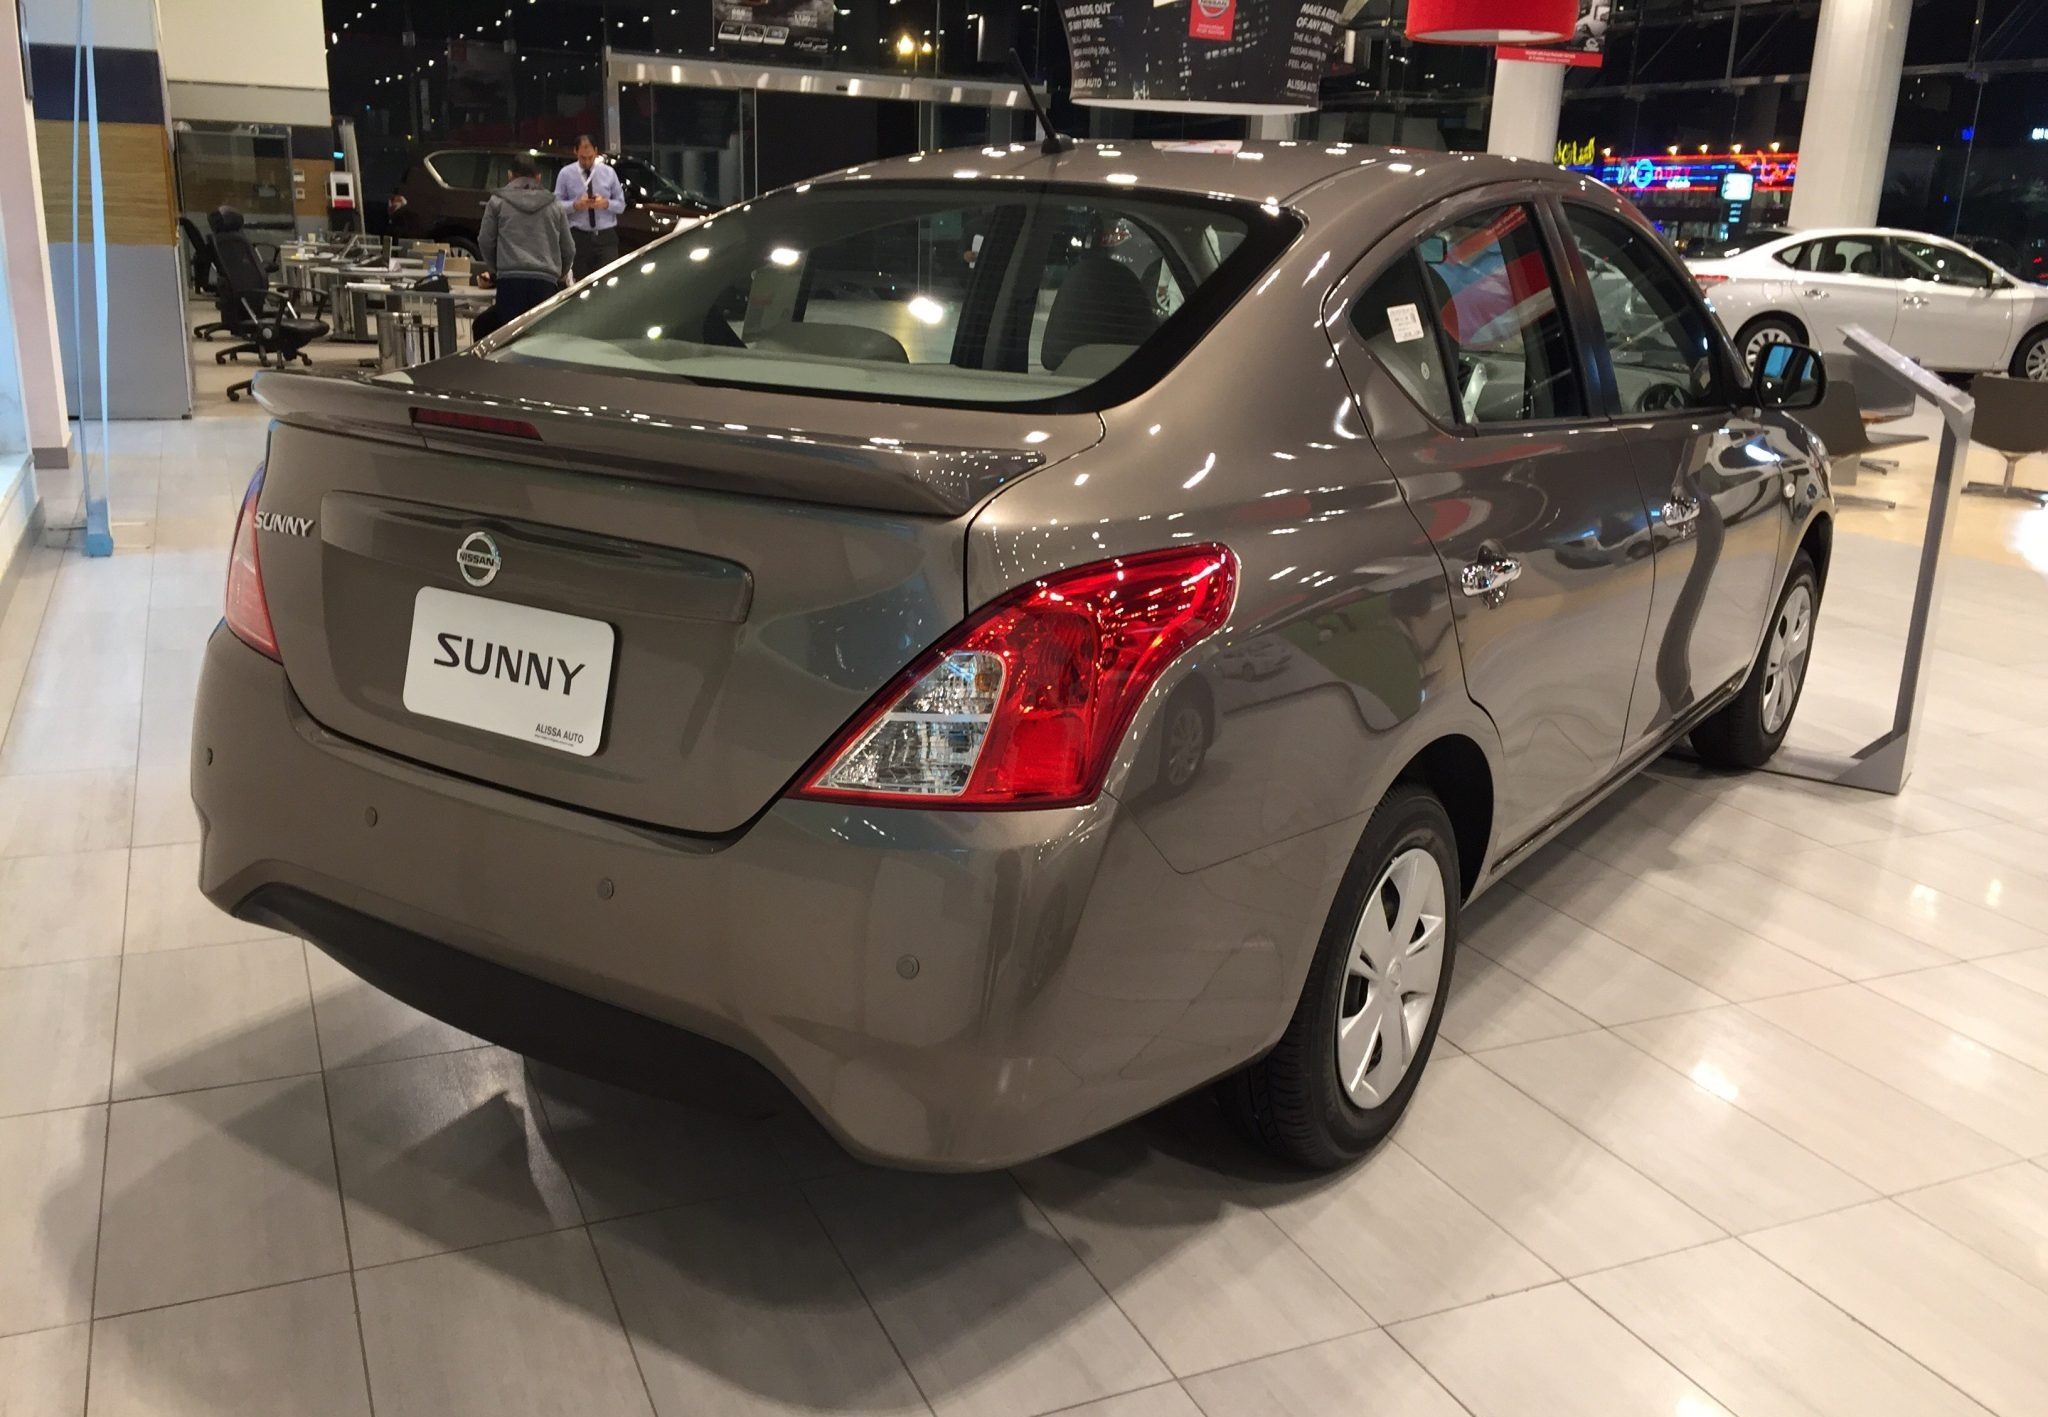 photos and price of nissan sunny 2018 in saudi arabia Photos and price of Nissan Sunny 2018 in Saudi Arabia  D8 A7 D9 84 D8 AA D8 B5 D9 85 D9 8A D9 85  D8 A7 D9 84 D8 AE D9 84 D9 81 D9 8A  D9 84 D9 84 D8 B3 D9 8A D8 A7 D8 B1 D8 A9  D9 86 D9 8A D8 B3 D8 A7 D9 86  D8 B5 D9 86 D9 8A 2018